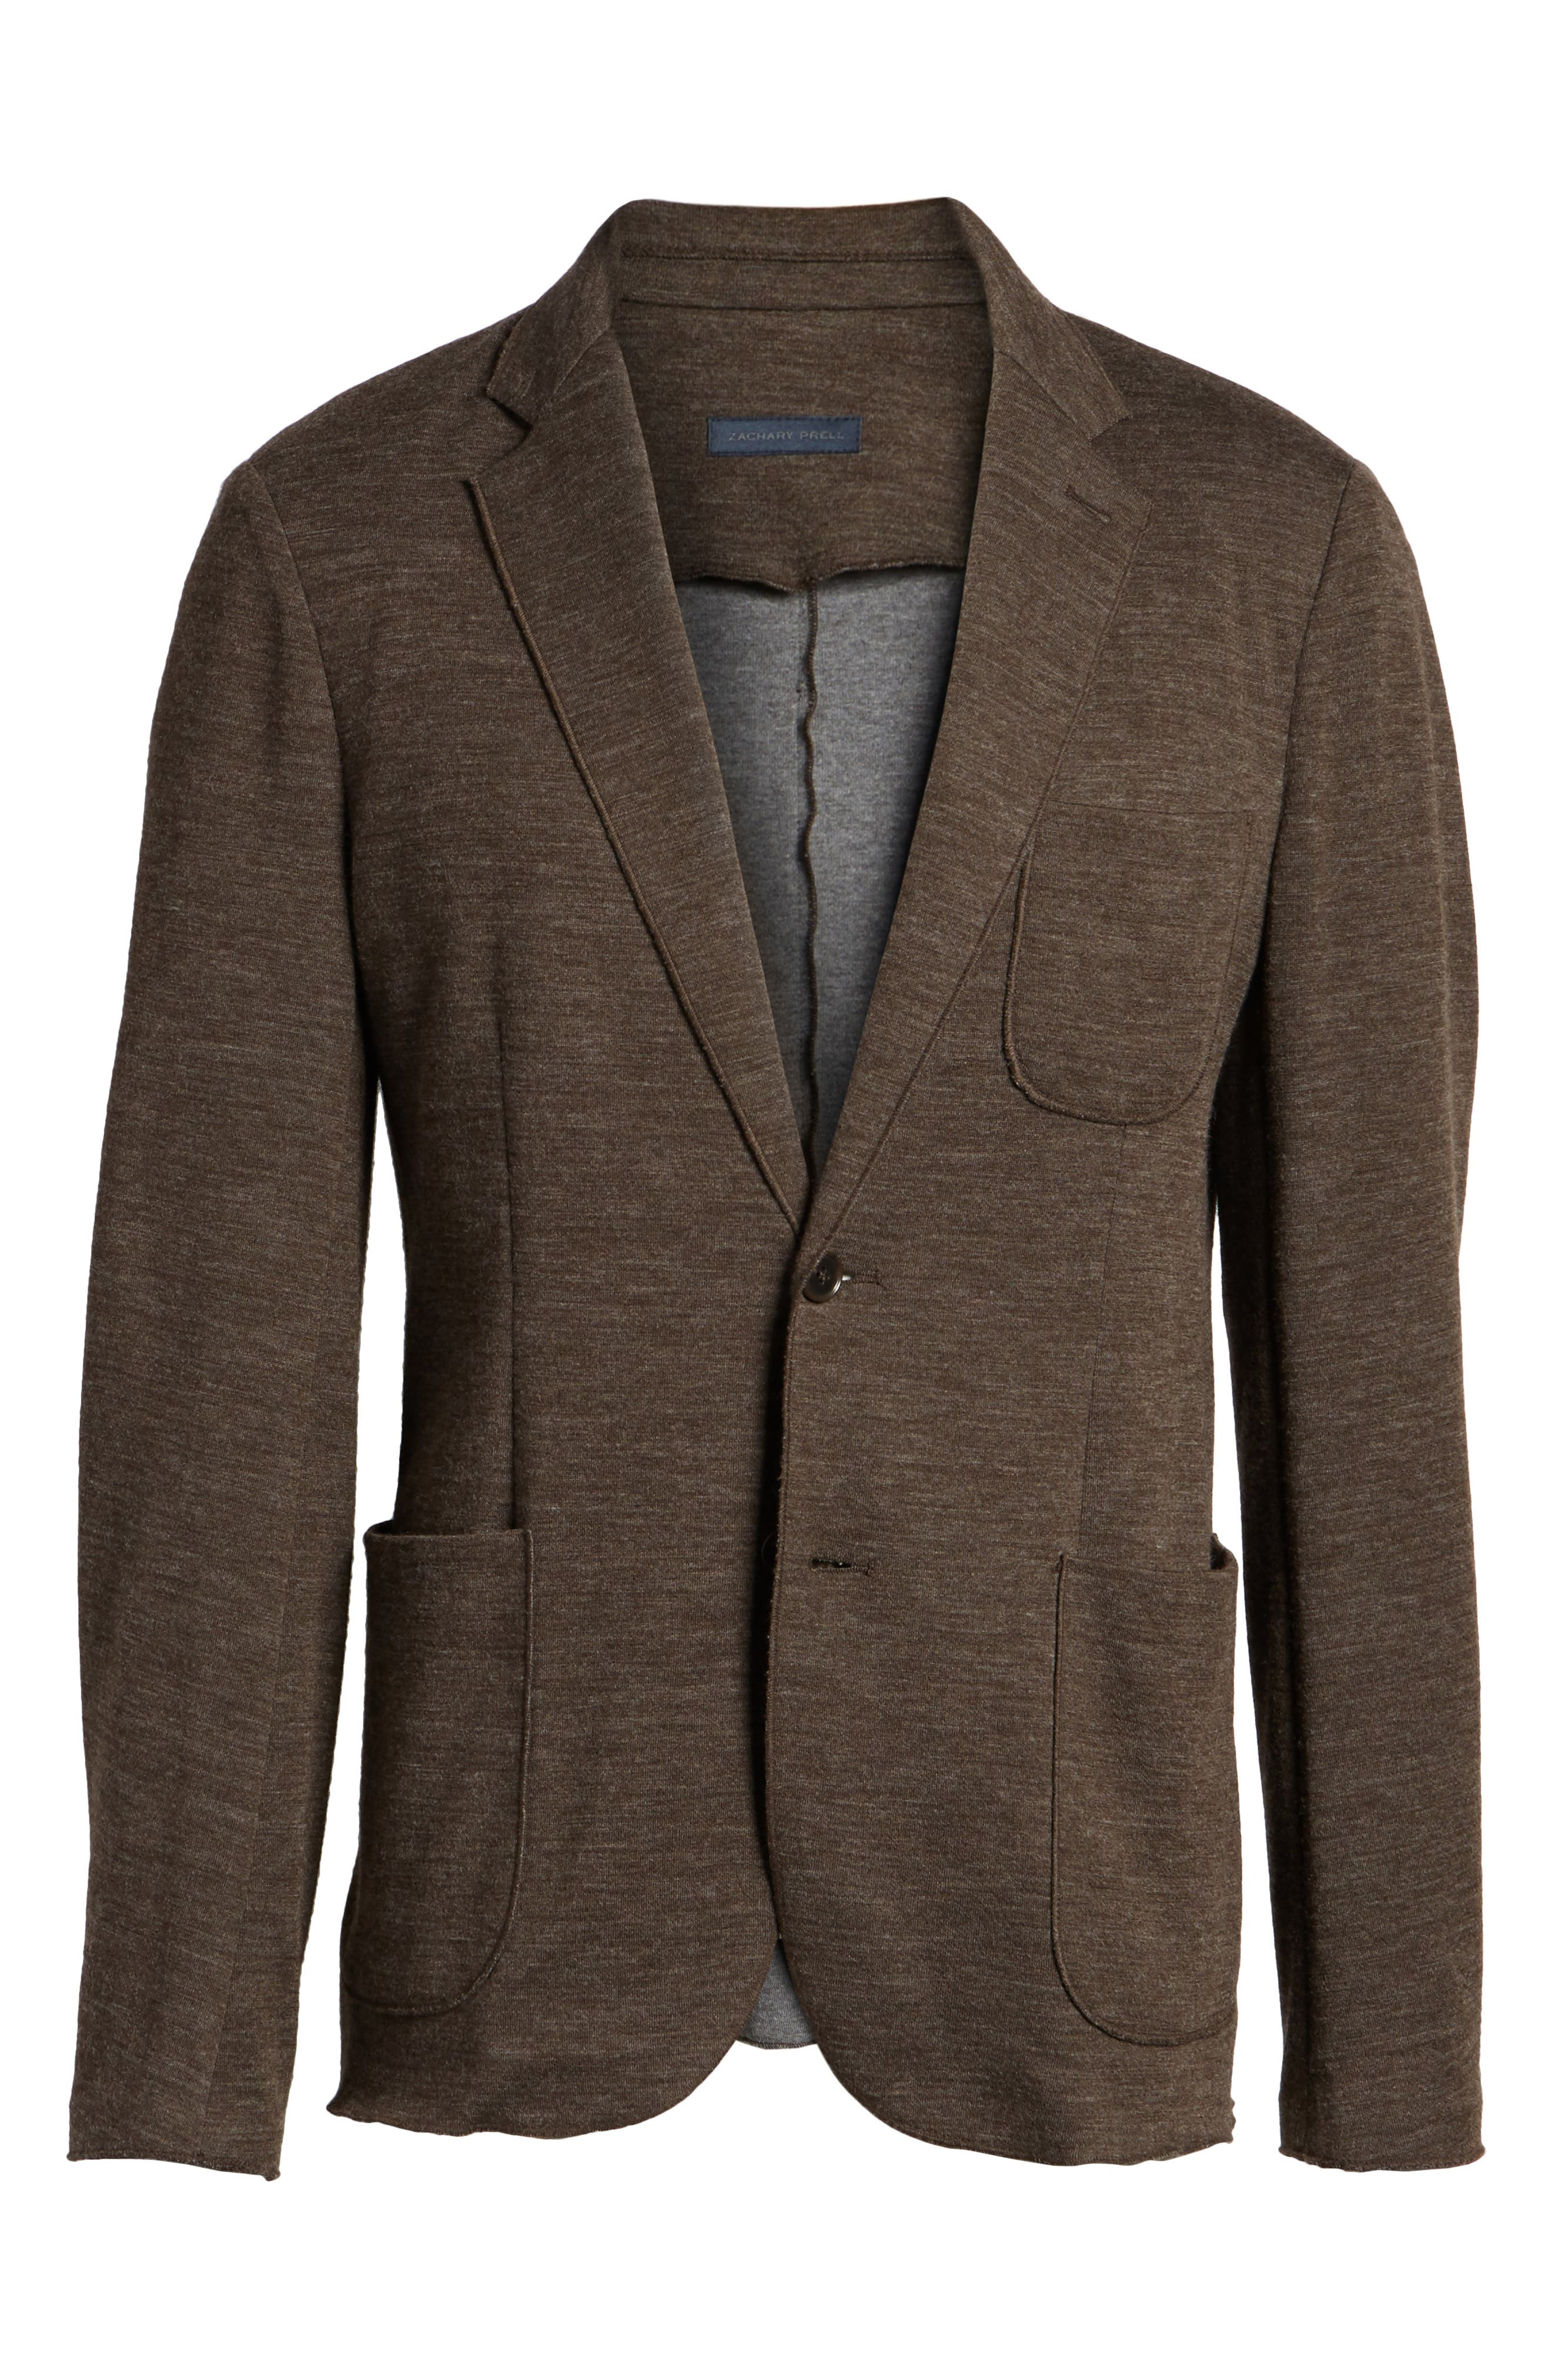 Knit Blazer,                             Alternate thumbnail 10, color,                             Brown